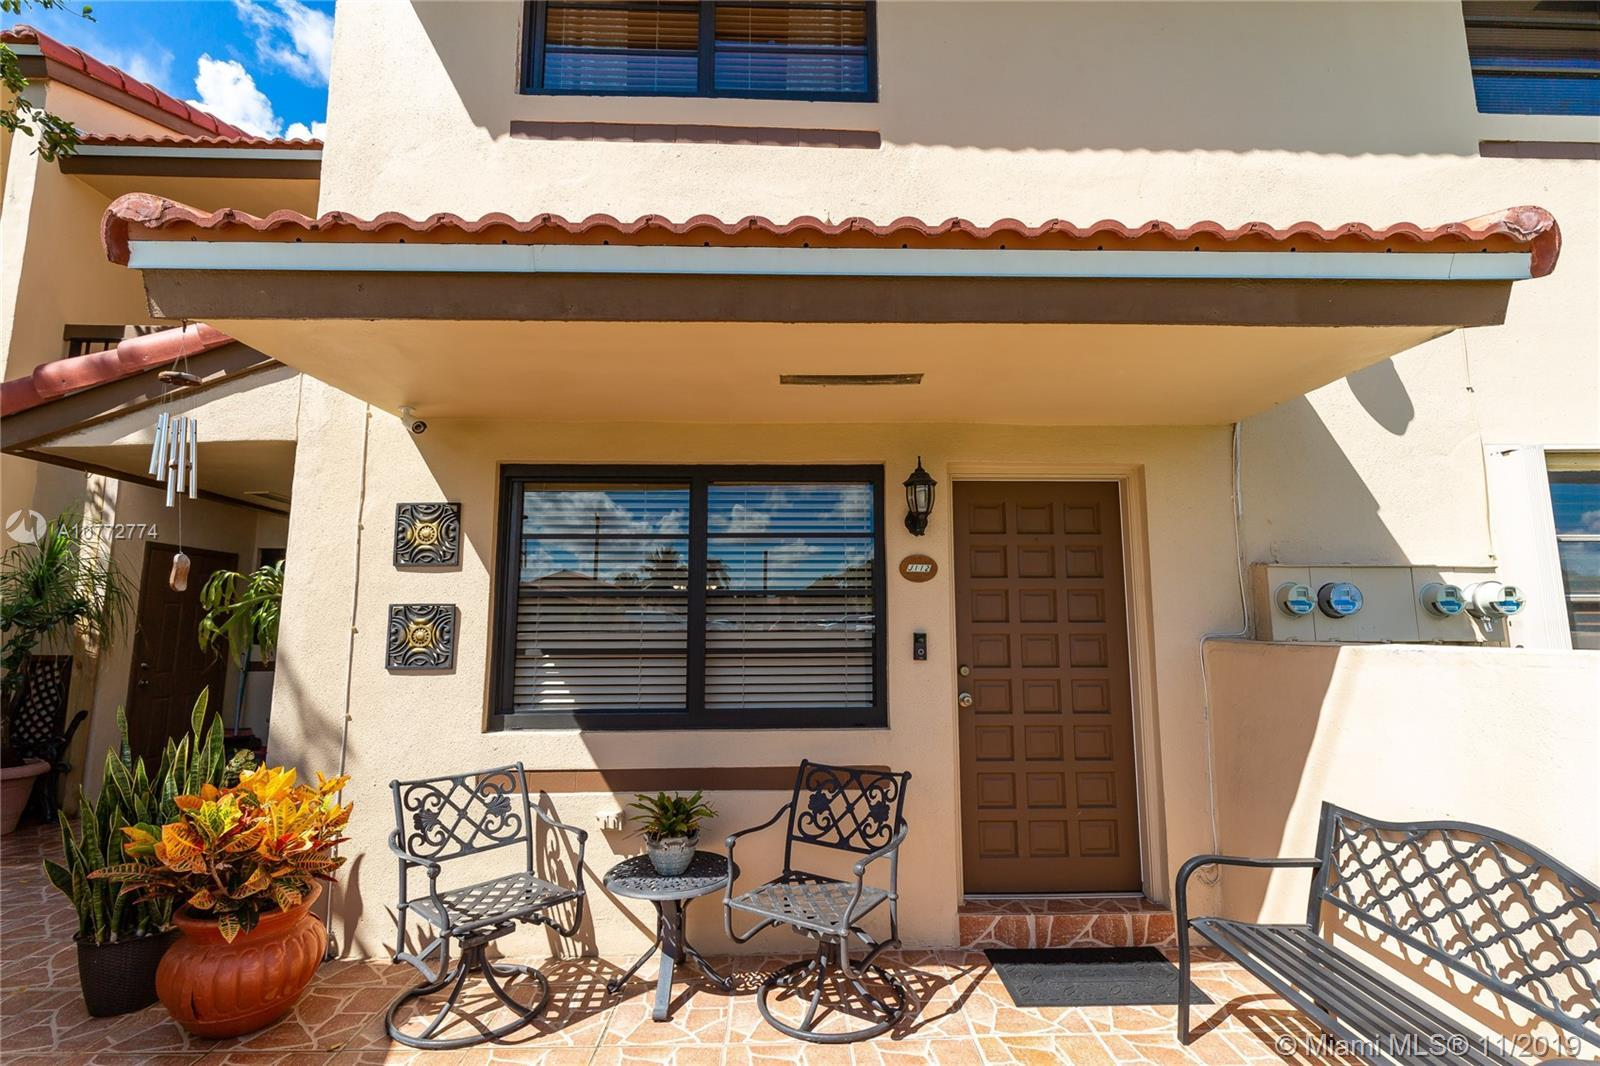 BACK ON THE MARKET! Renovated two-story Condo in the heart of Kendall. 2 Bedrooms and 2.5 Baths. New